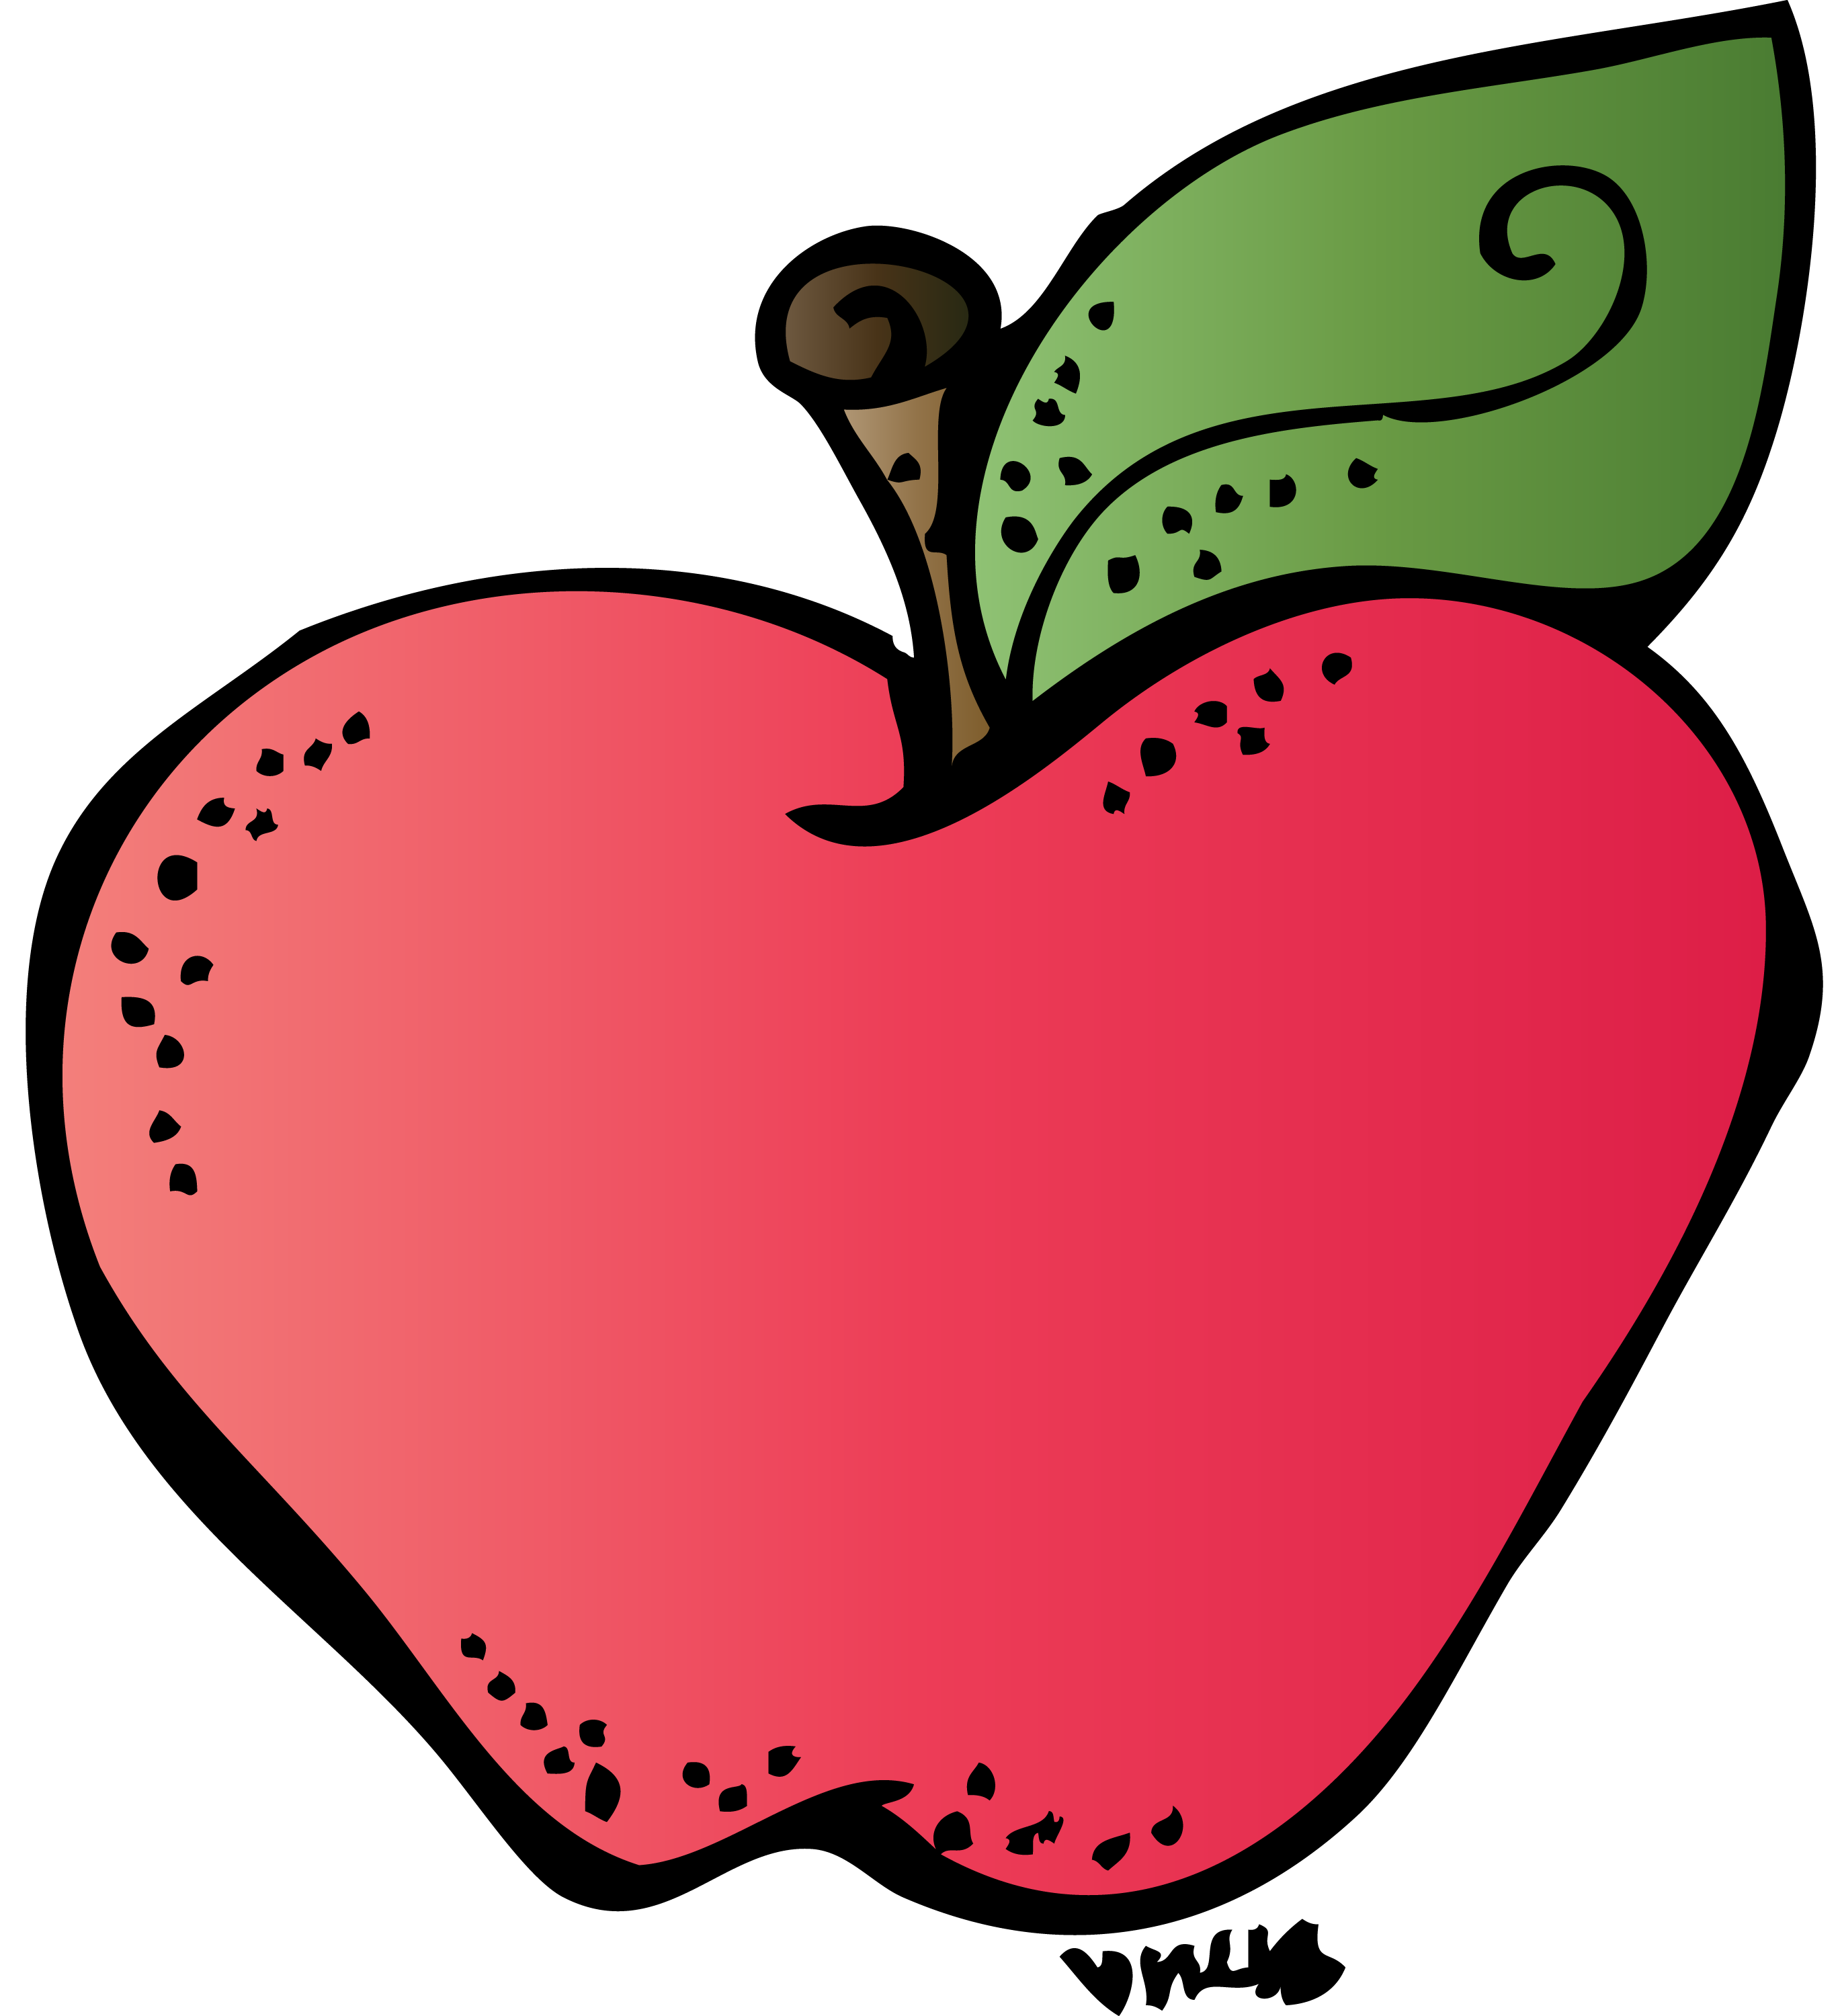 Back to school apple clipart clipart royalty free download The Story of Johnny Appleseed | My Storybook clipart royalty free download